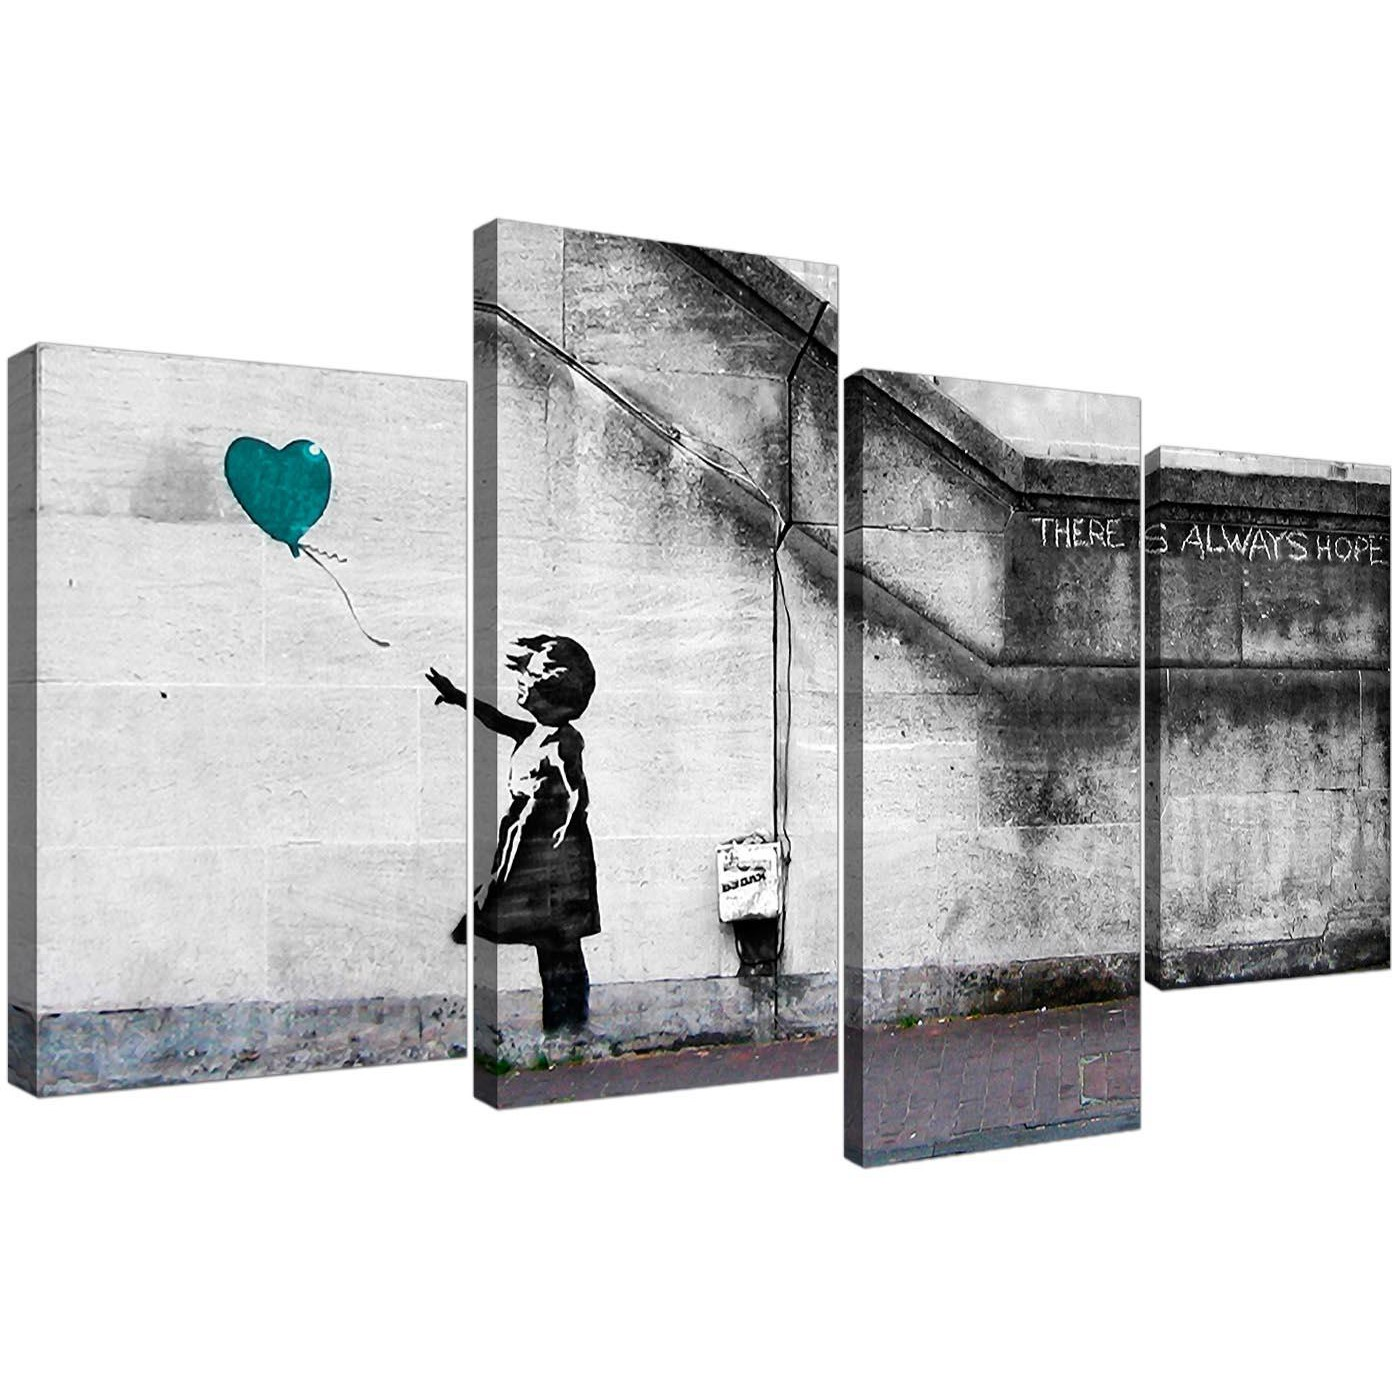 Cheap Canvas Pictures Teal Banksy Balloon Girl Canvas Wall Art 130cm X 67cm